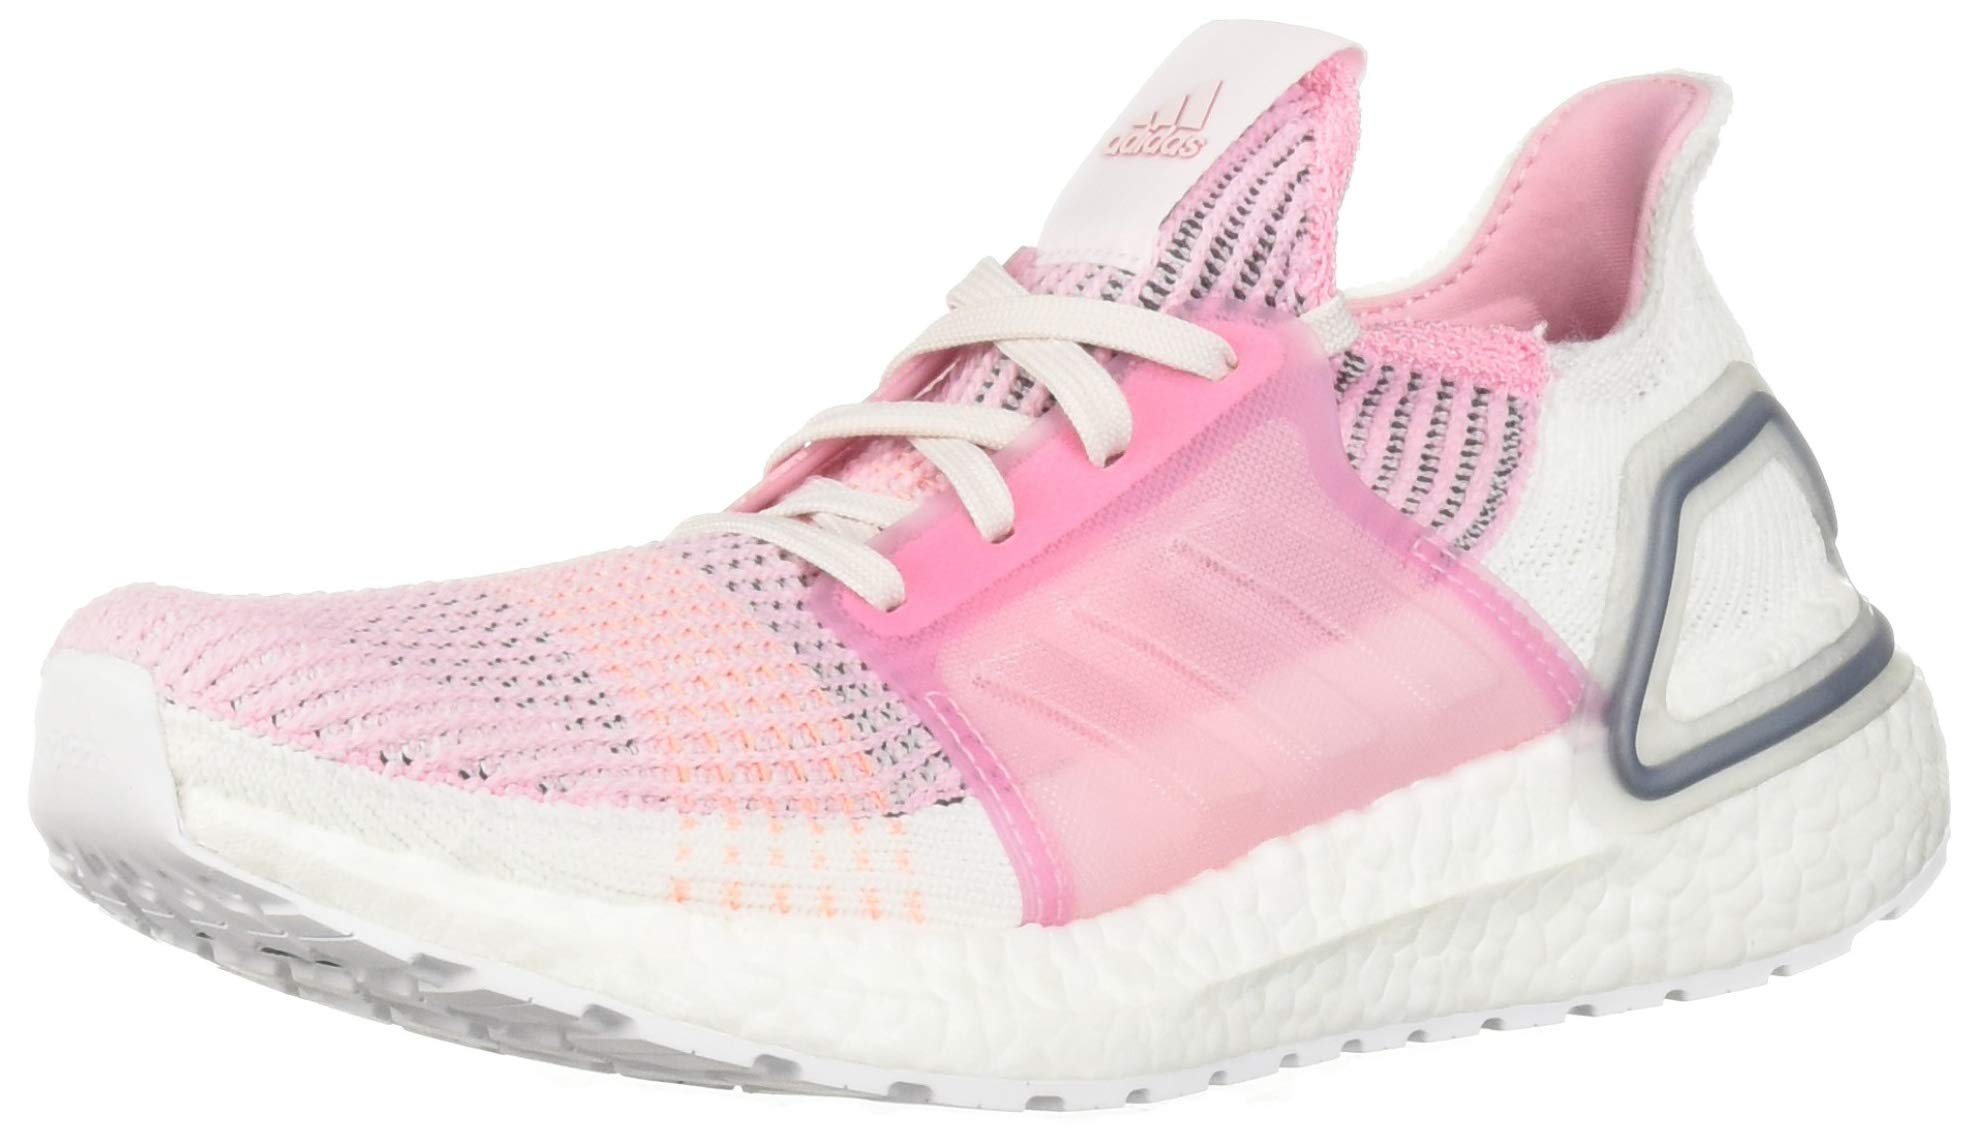 adidas Women's Ultraboost 19, True Pink/Orchid Tint, 11 M US by adidas